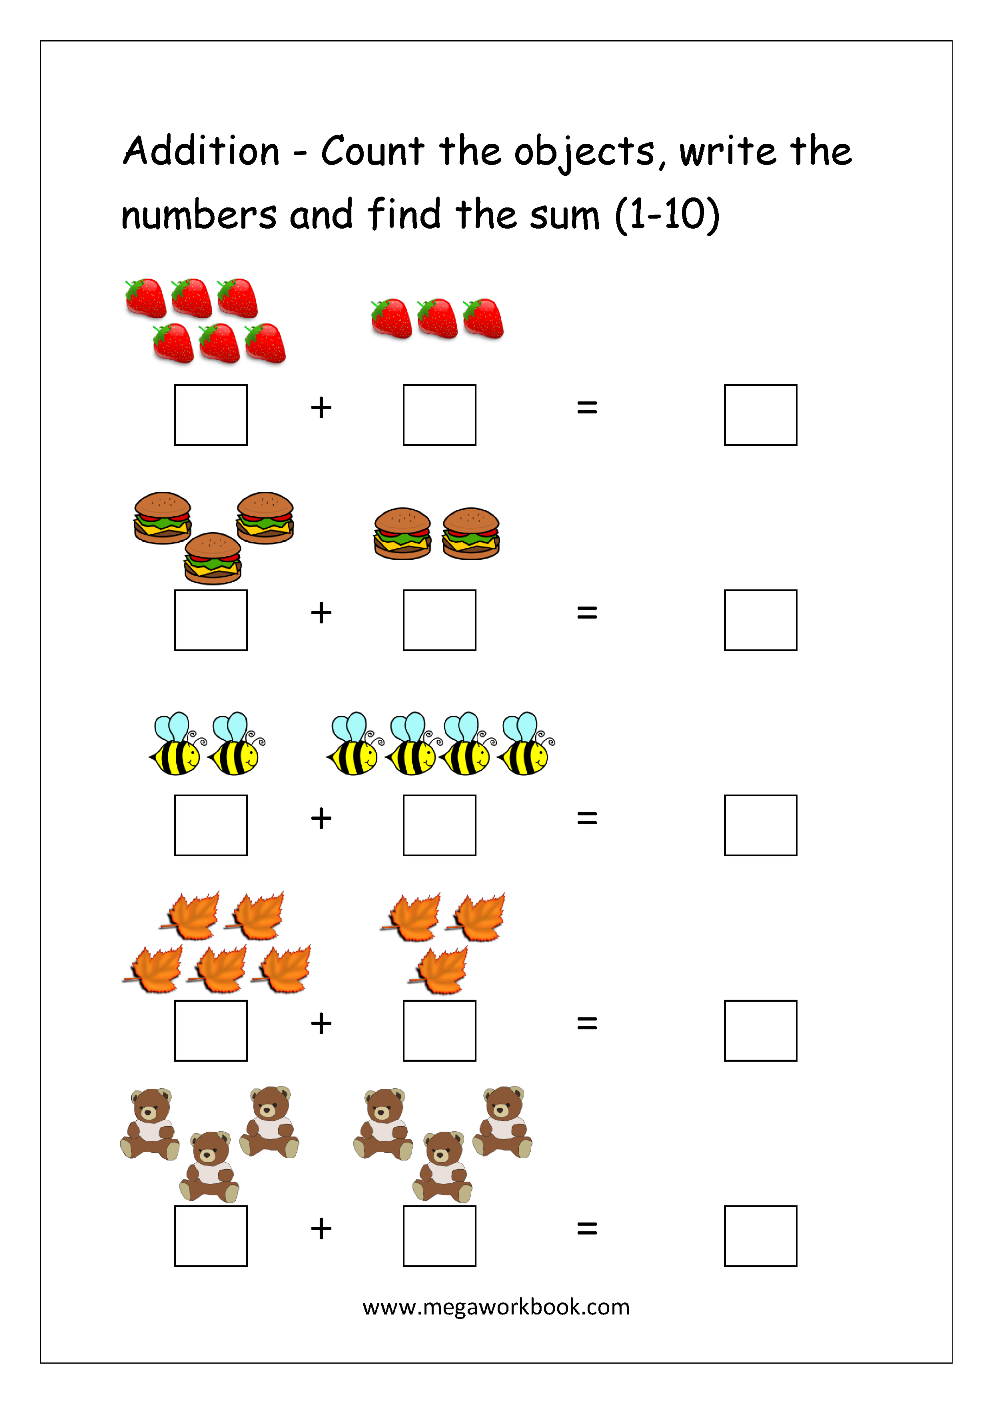 math worksheet addition using objects 1 10 - Addition Worksheet